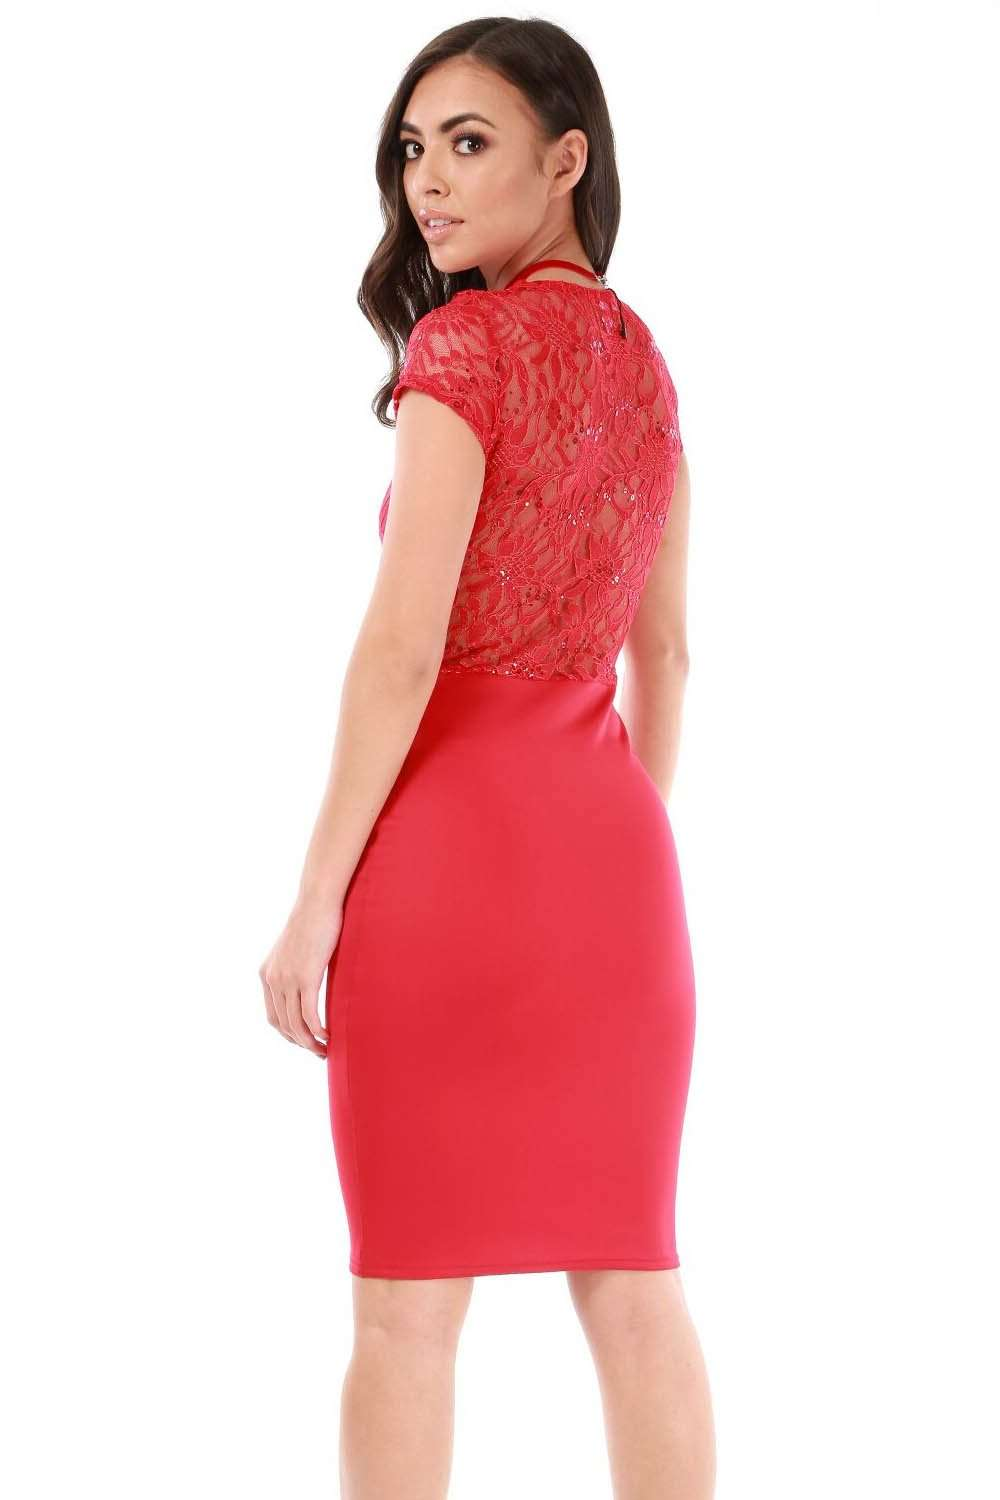 Short Sleeve Red Sequin Bodycon Midi Dress - bejealous-com